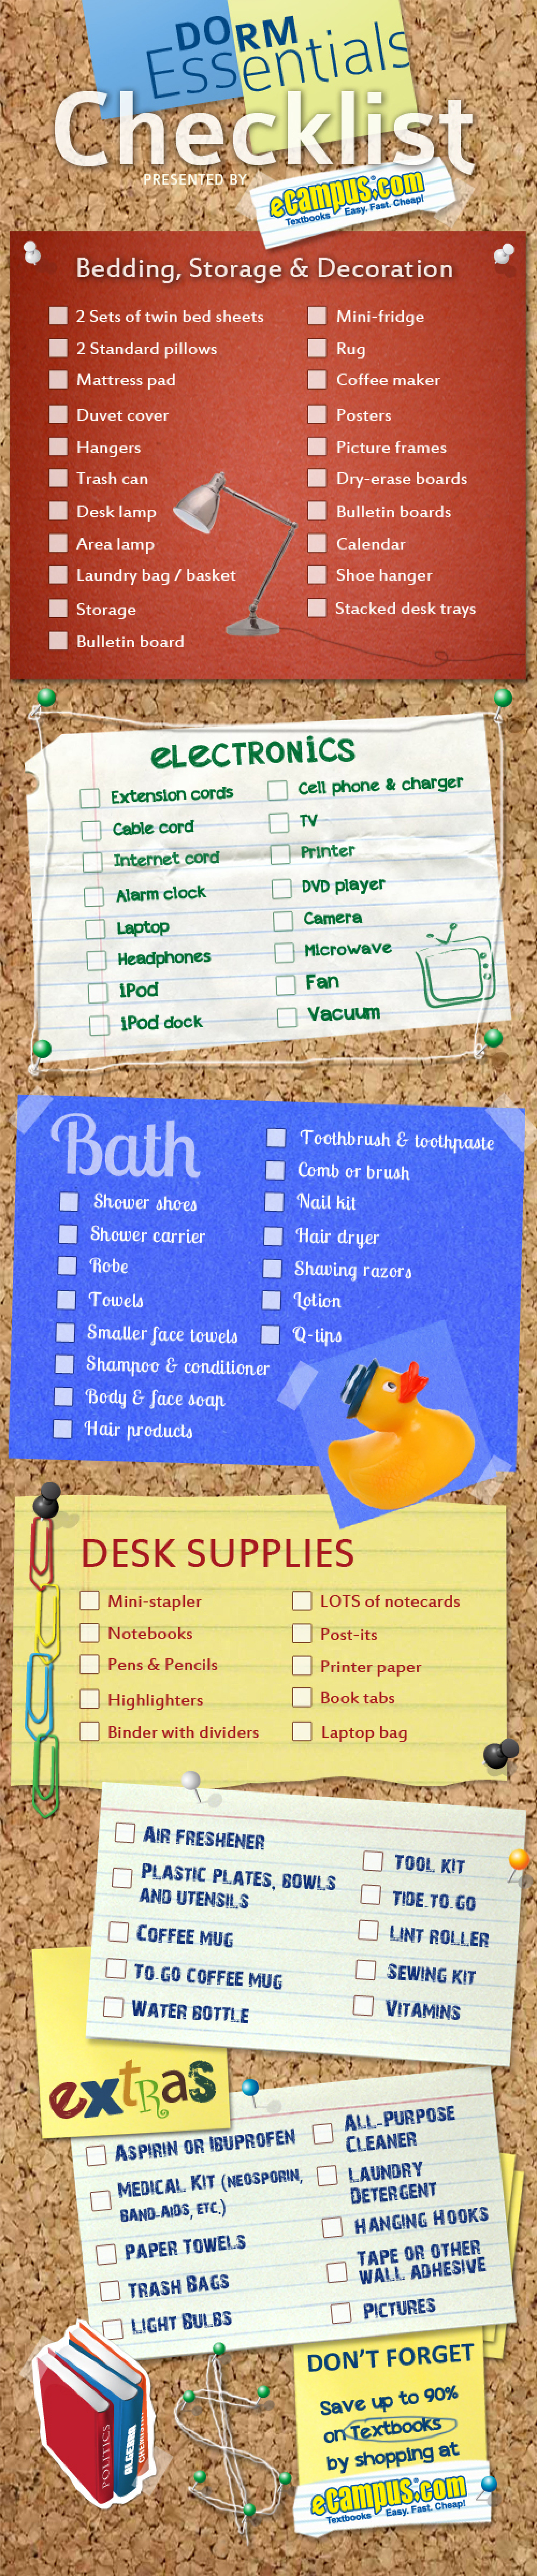 Dorm Essentials Checklist Infographic